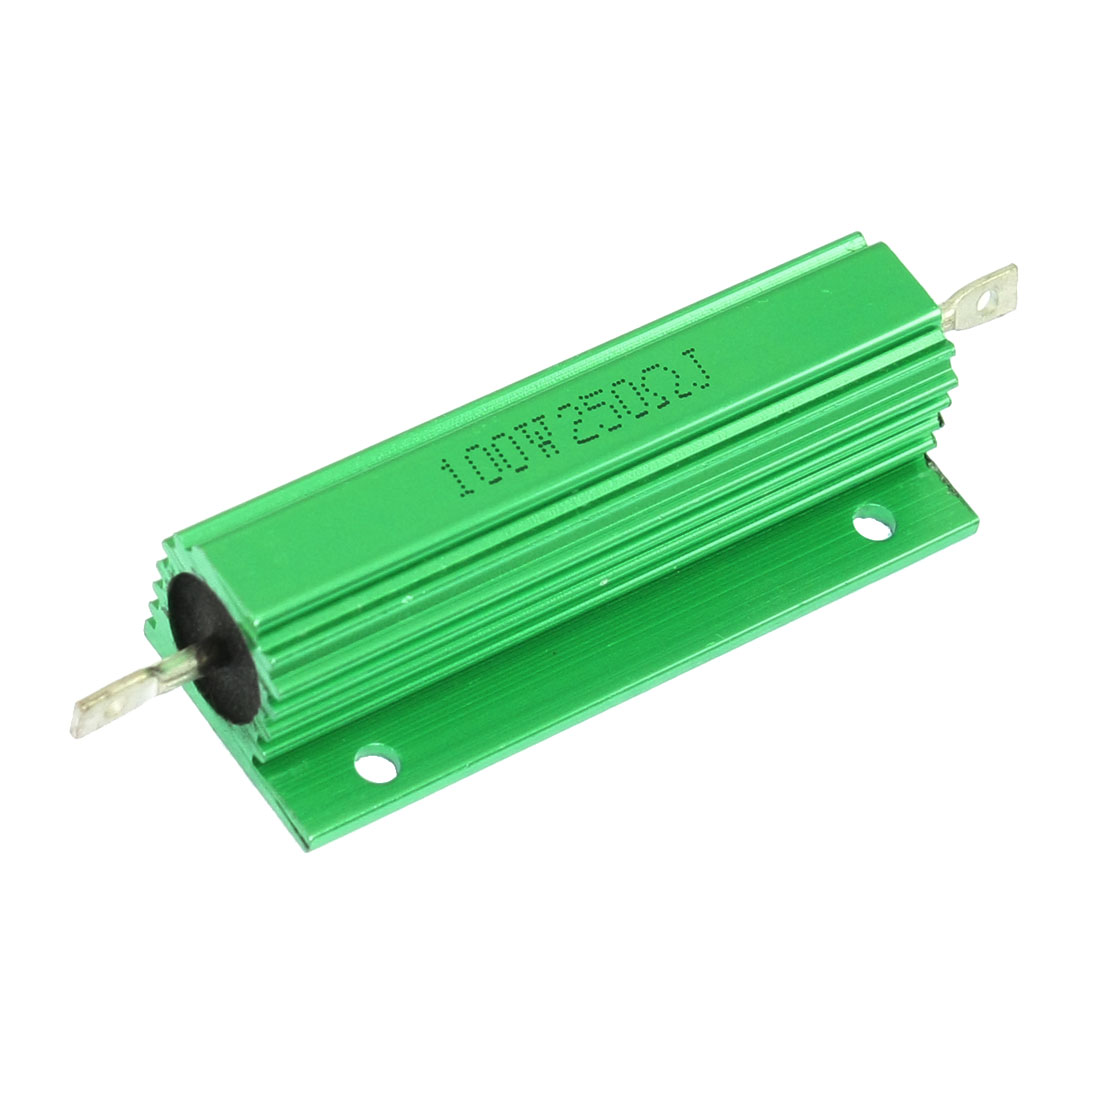 100W 250 Ohm Chassis Mounted Green Aluminum Housed Resistor